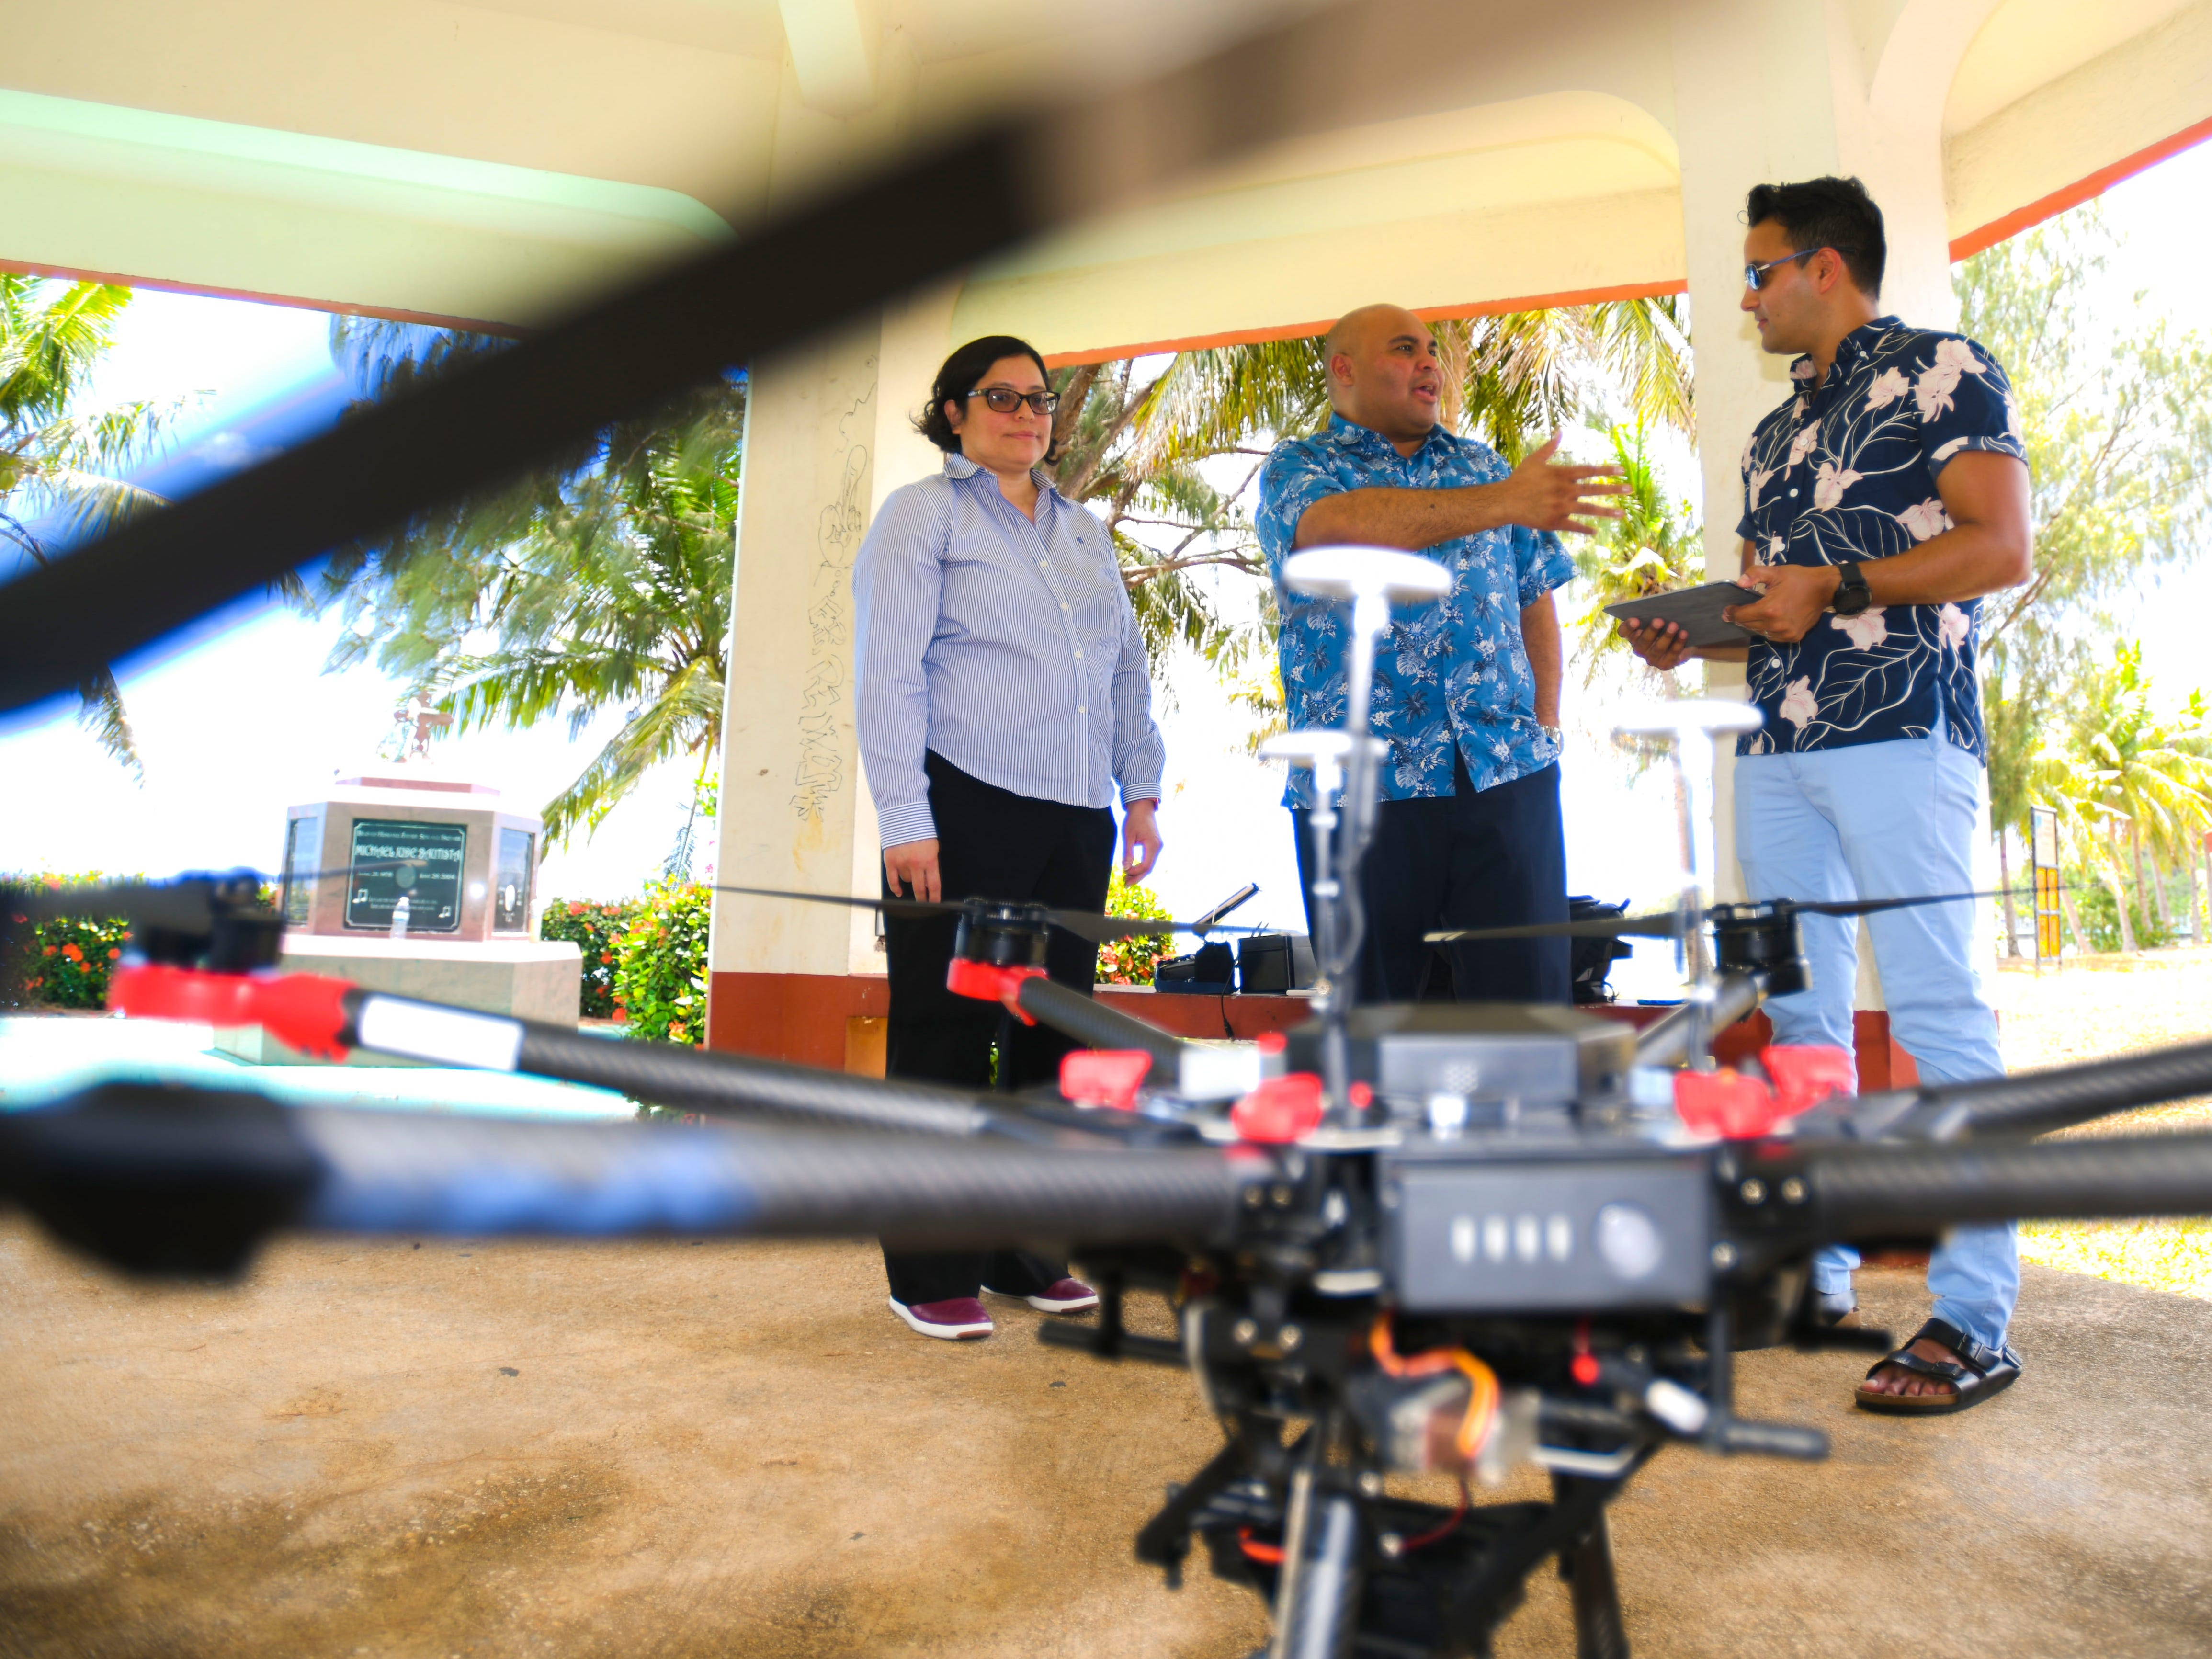 Researchers from the University of Guam's Pacific Islands Climate Adaptation Science Center and NASA's Lab for Advance Sensing Earth Science Division prepare to demonstrate the flight of an unmanned NASA aerial vehicle at Tepungan Beach Park, near Fisheye Marine Park in Piti, on Wednesday, May 15, 2019. The drone, using Fluid Lensing technology developed by research scientist Ved Chirayath, has been able to map the underwater coral formations in the waters of Piti and Tumon from the air.